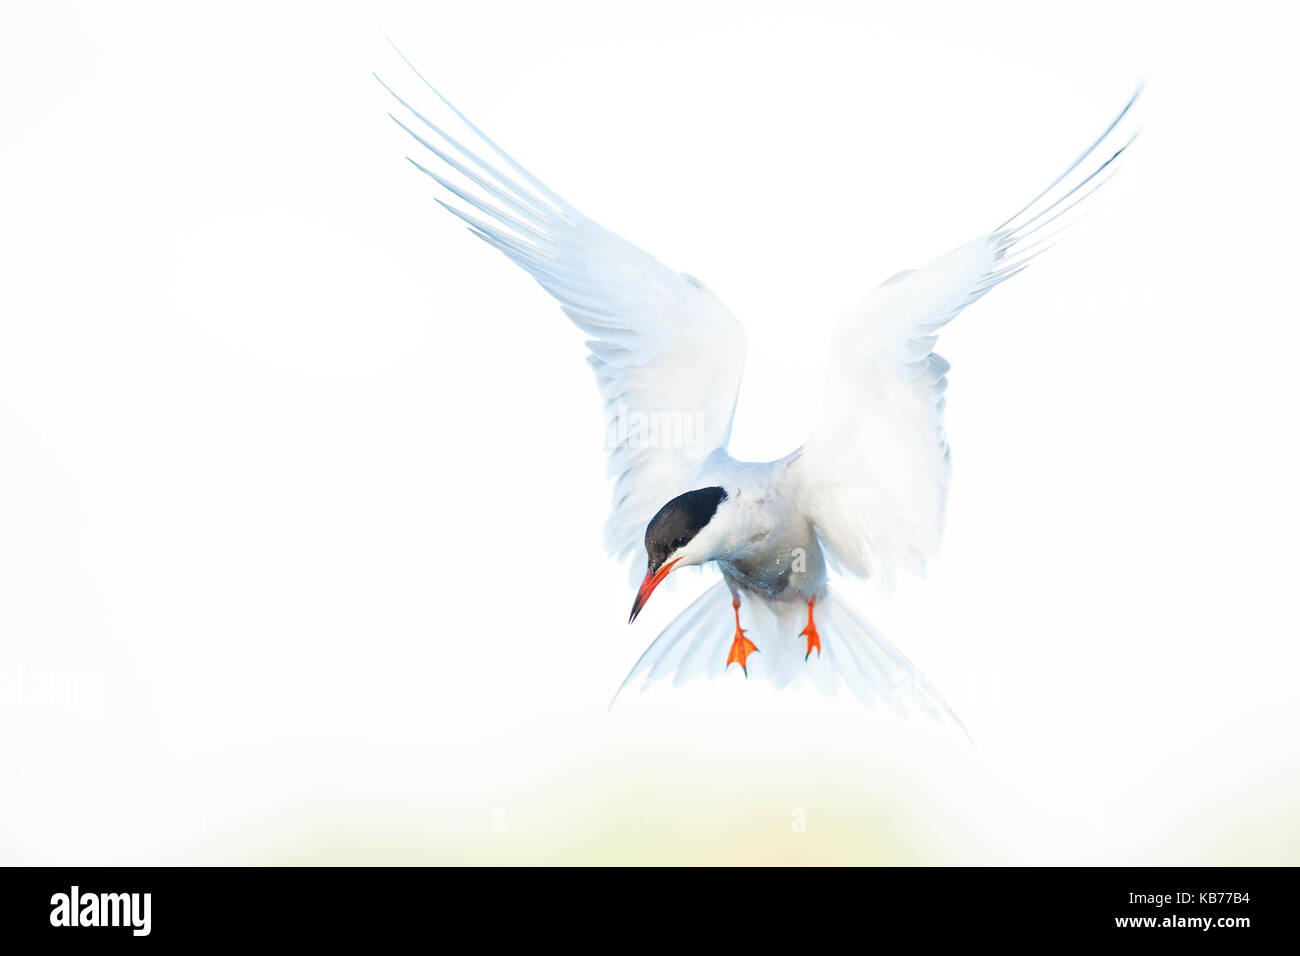 Common Tern (Sterna Hirundo) hover, The Netherlands, Zuid-Holland - Stock Image